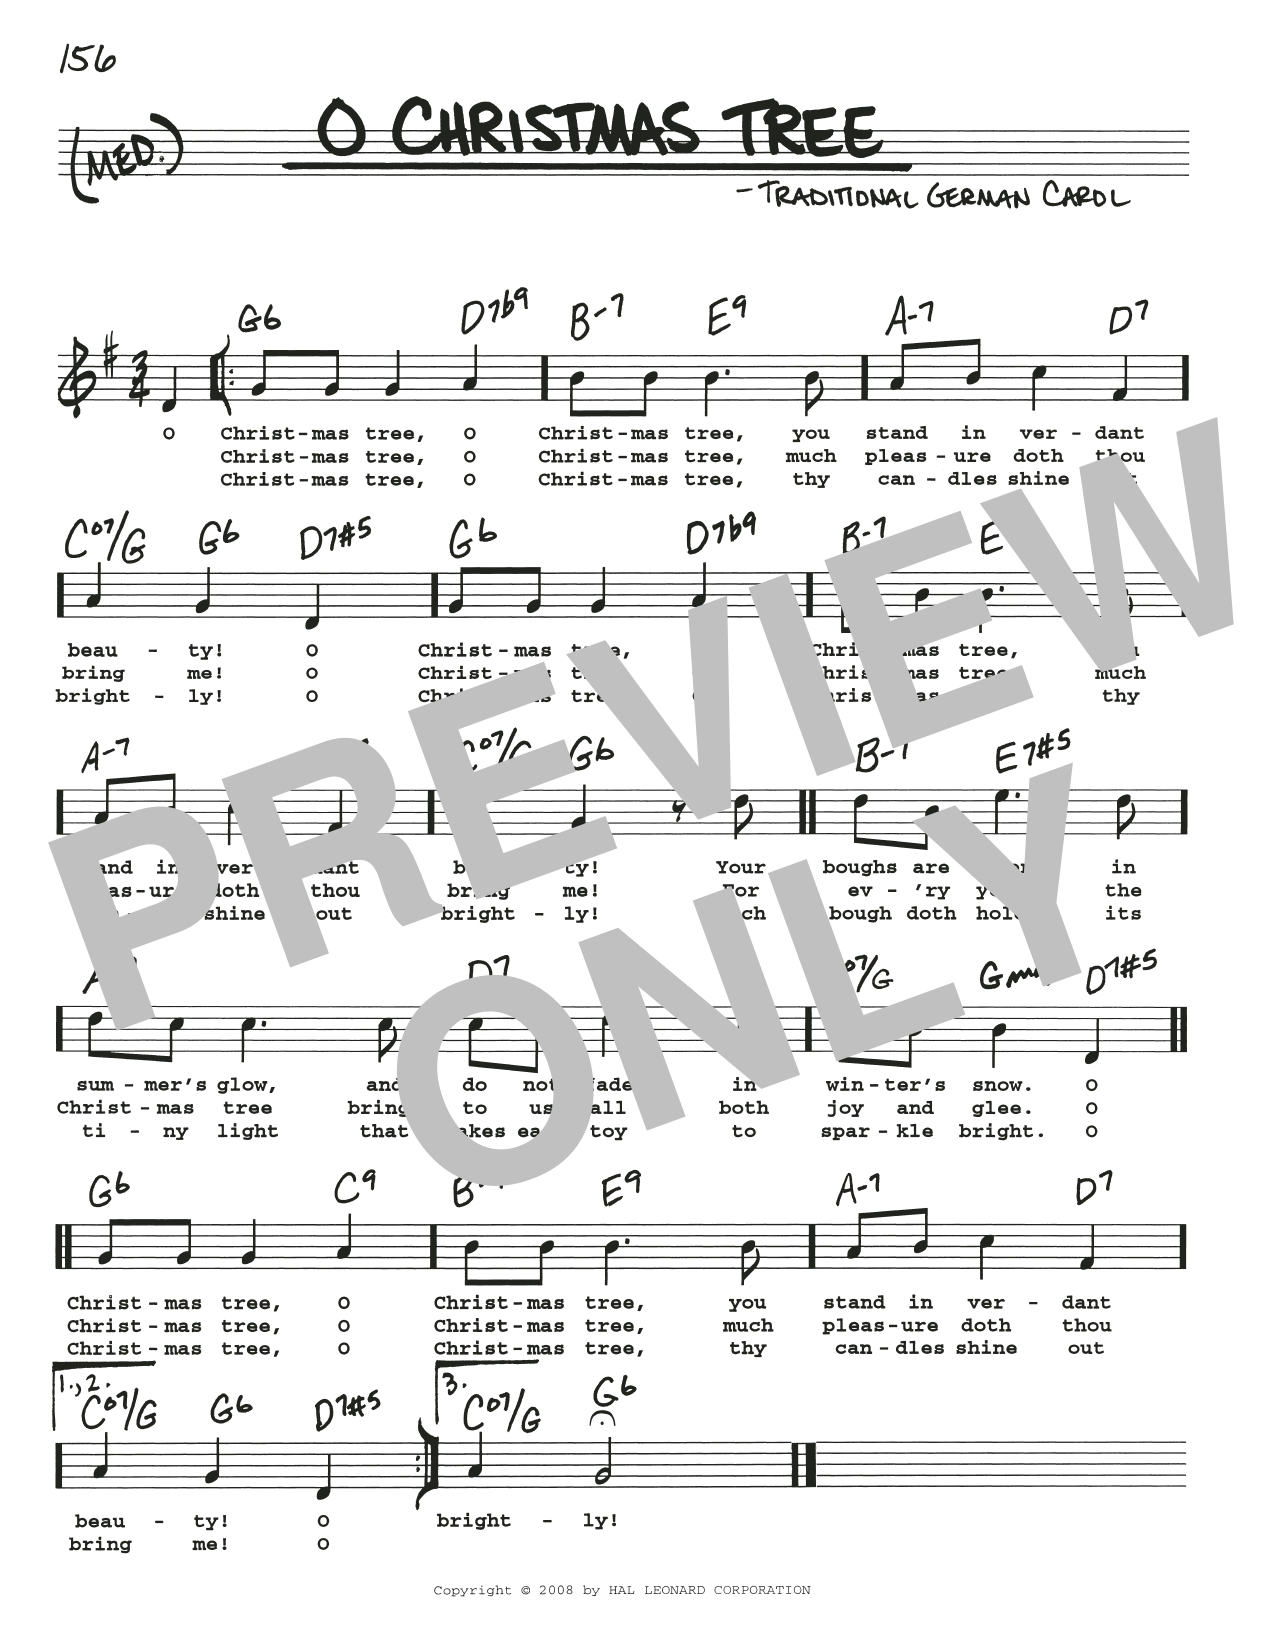 O Christmas Tree sheet music by Traditional German Carol (Real Book ...